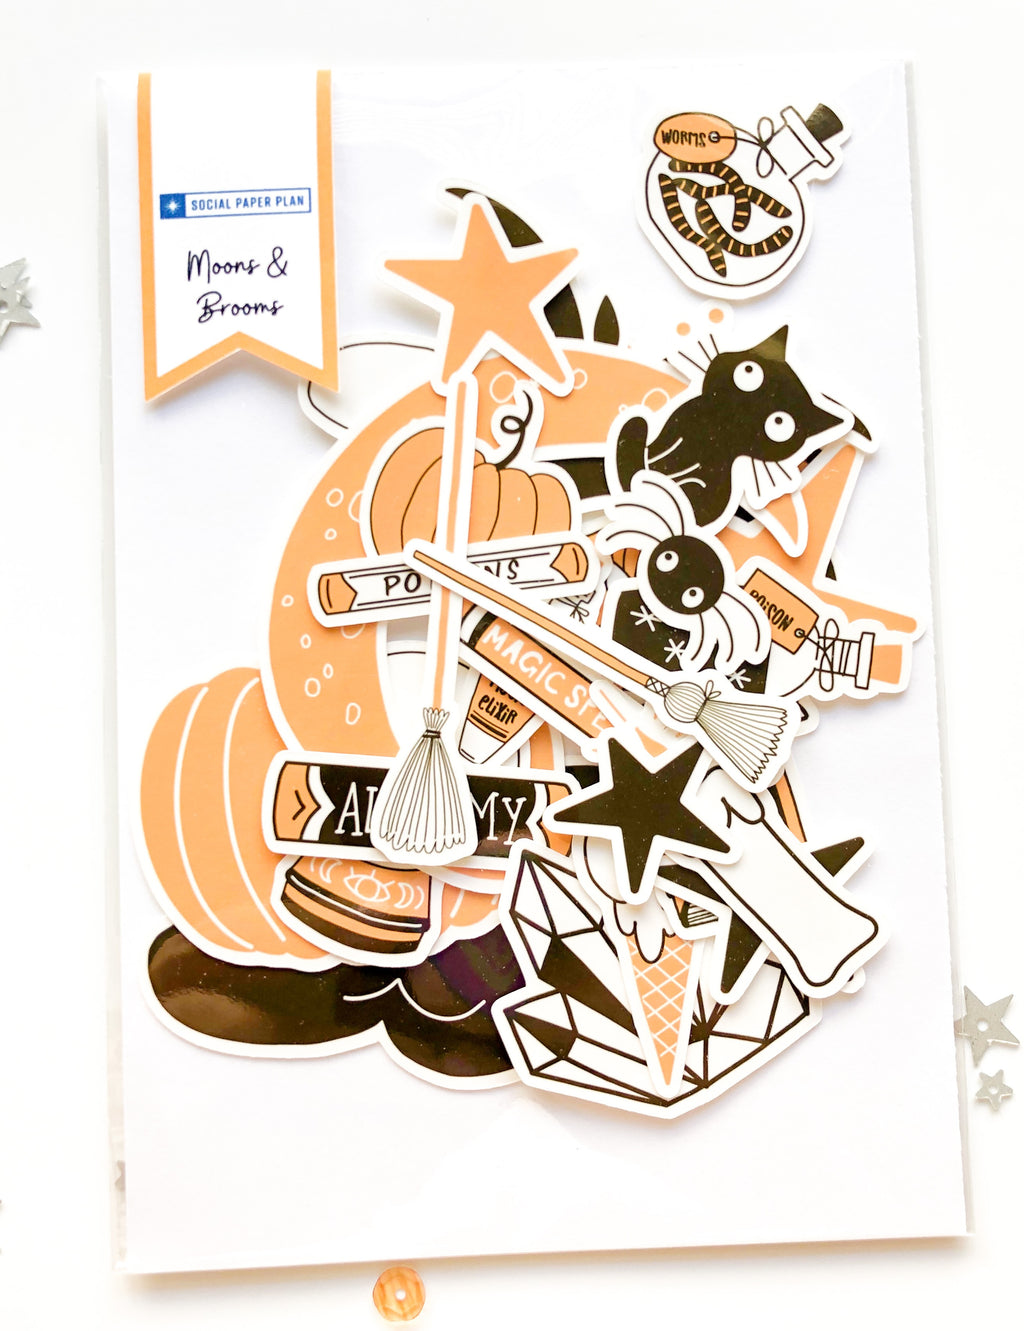 Moons & Brooms Halloween Icon Ephemera Paper Pack